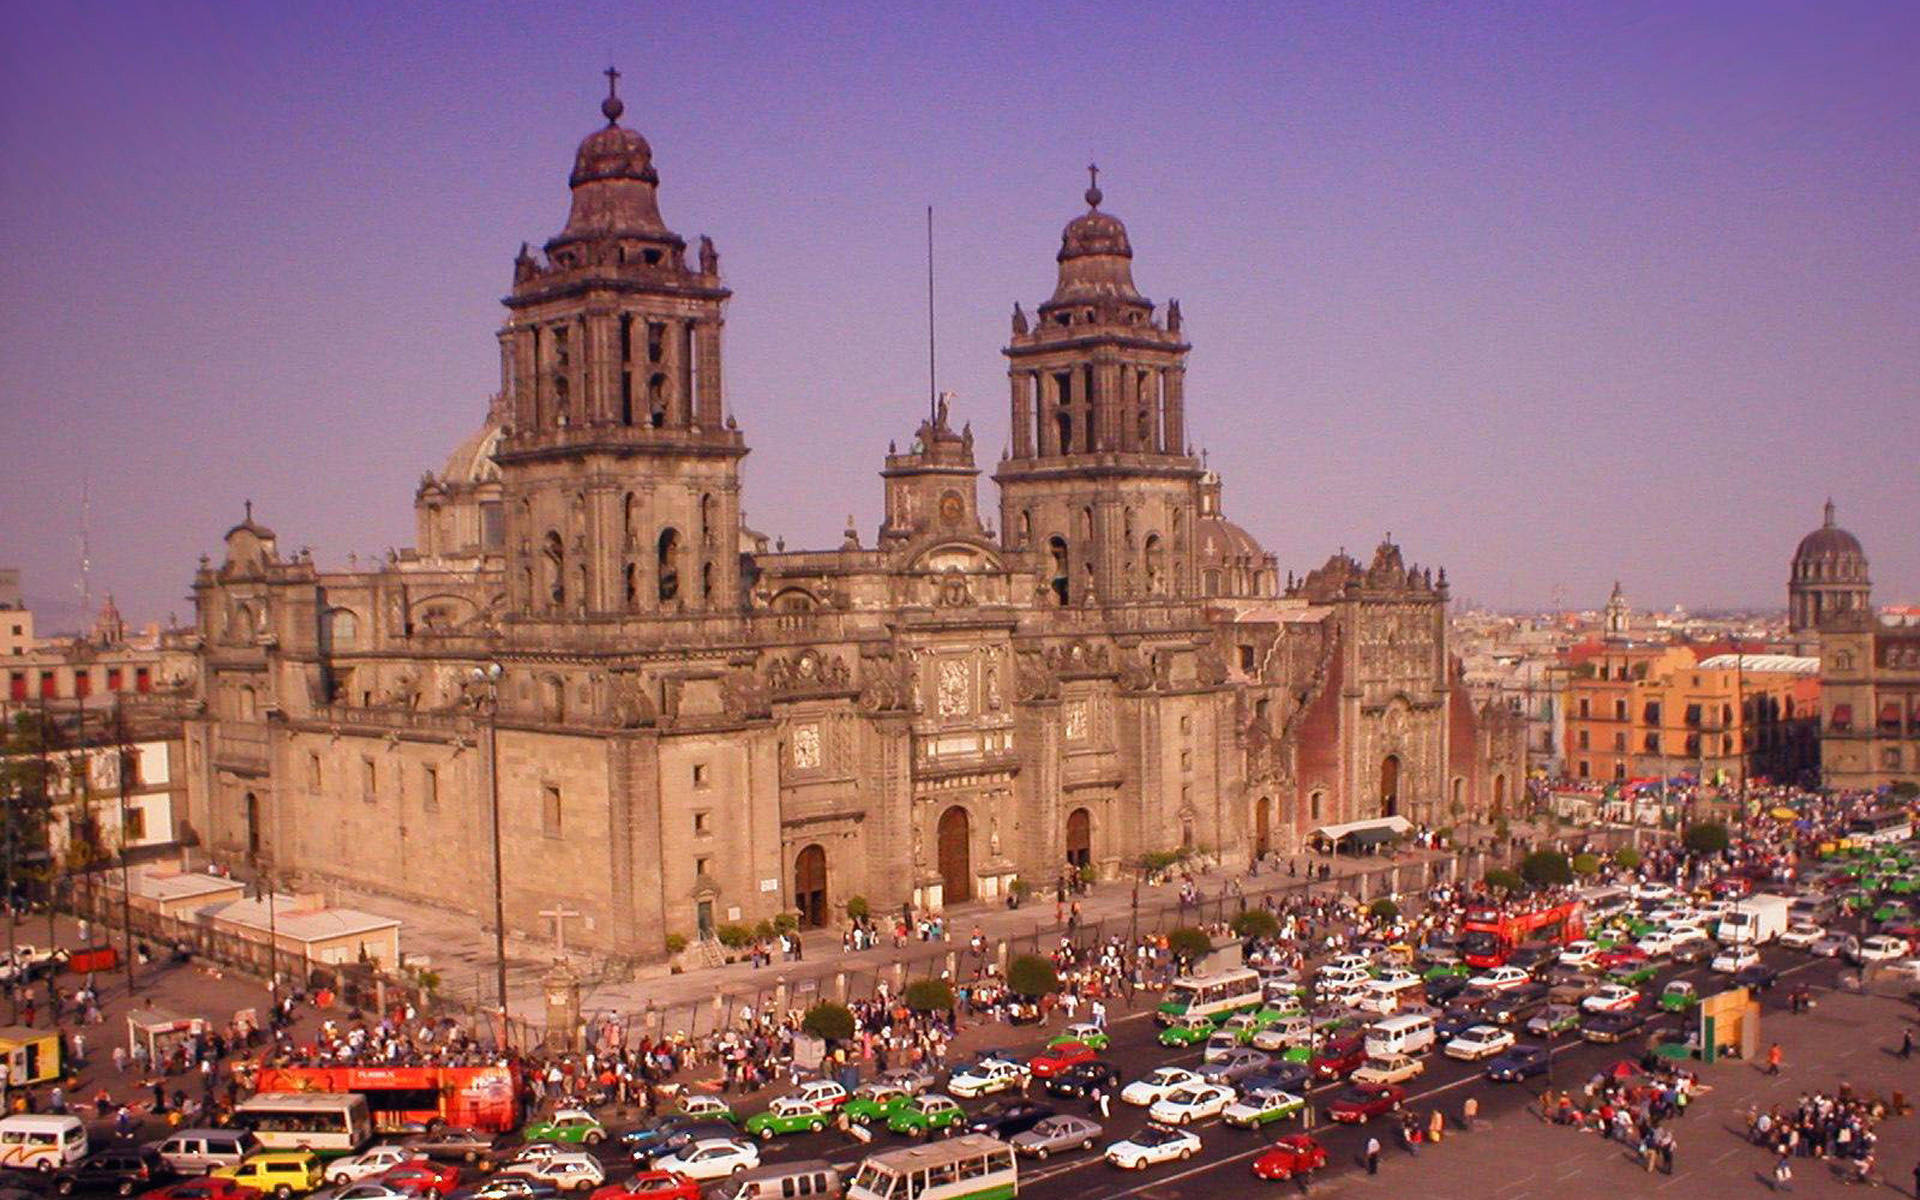 Mexico City Wallpapers PC 9462I4X WallpapersExpertcom 1920x1200